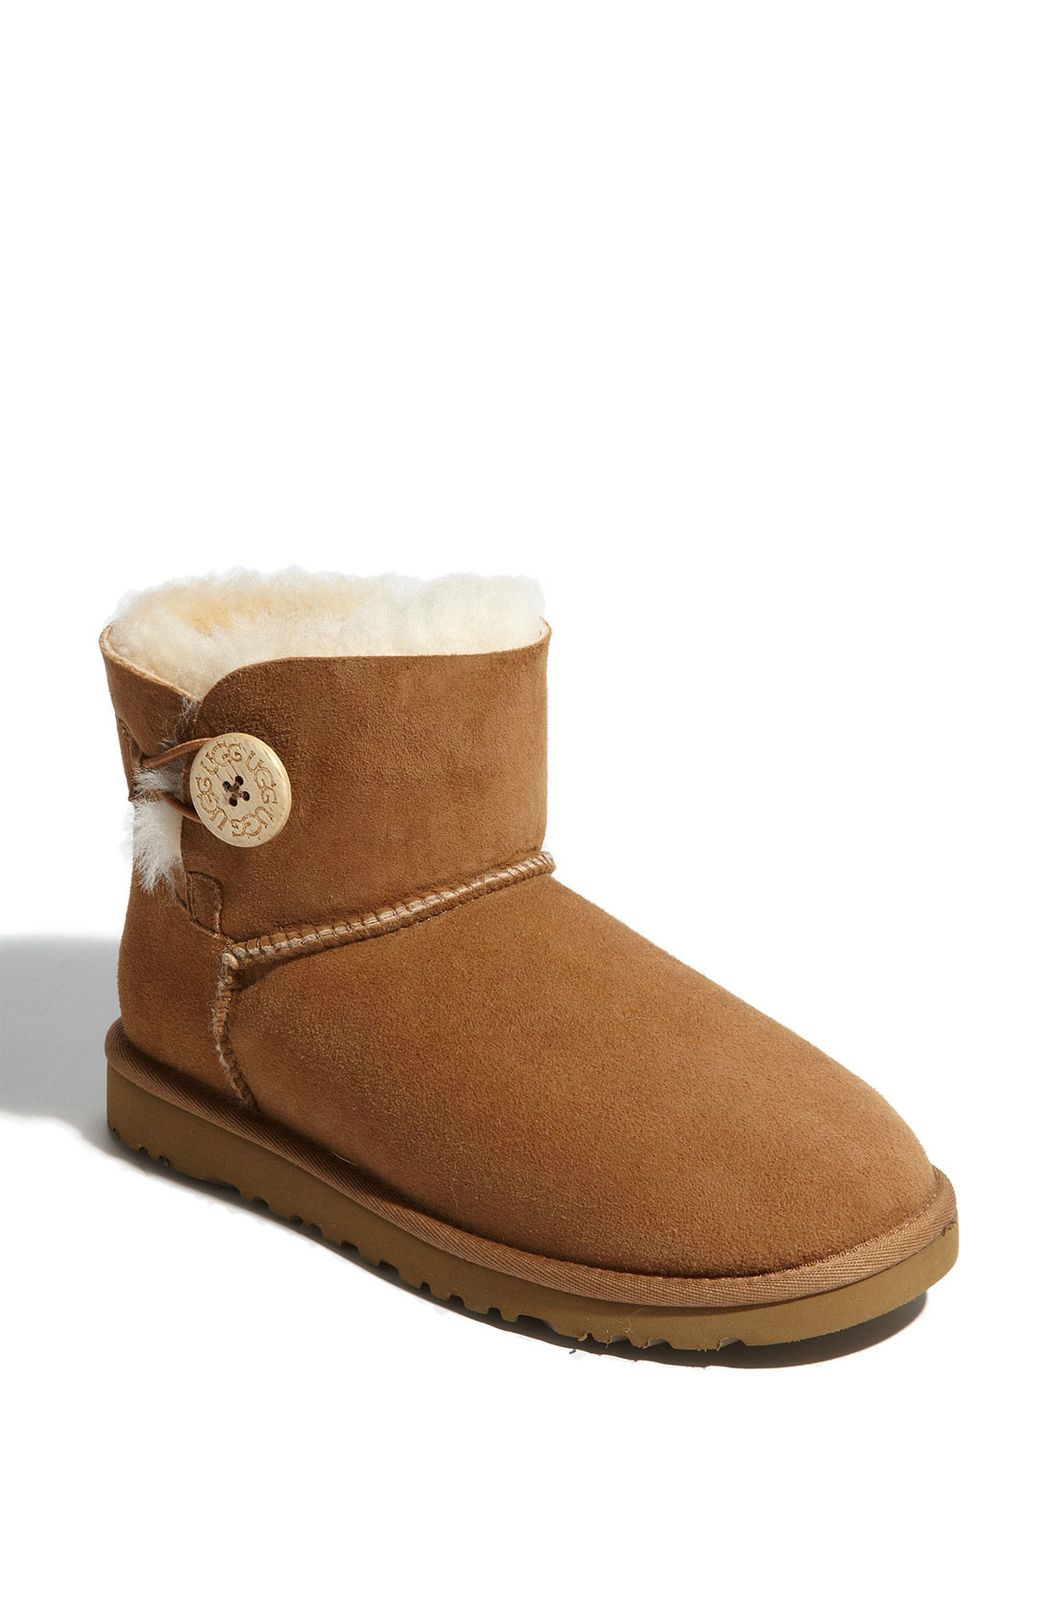 The new UGG, bring you a new experience. Time is changing